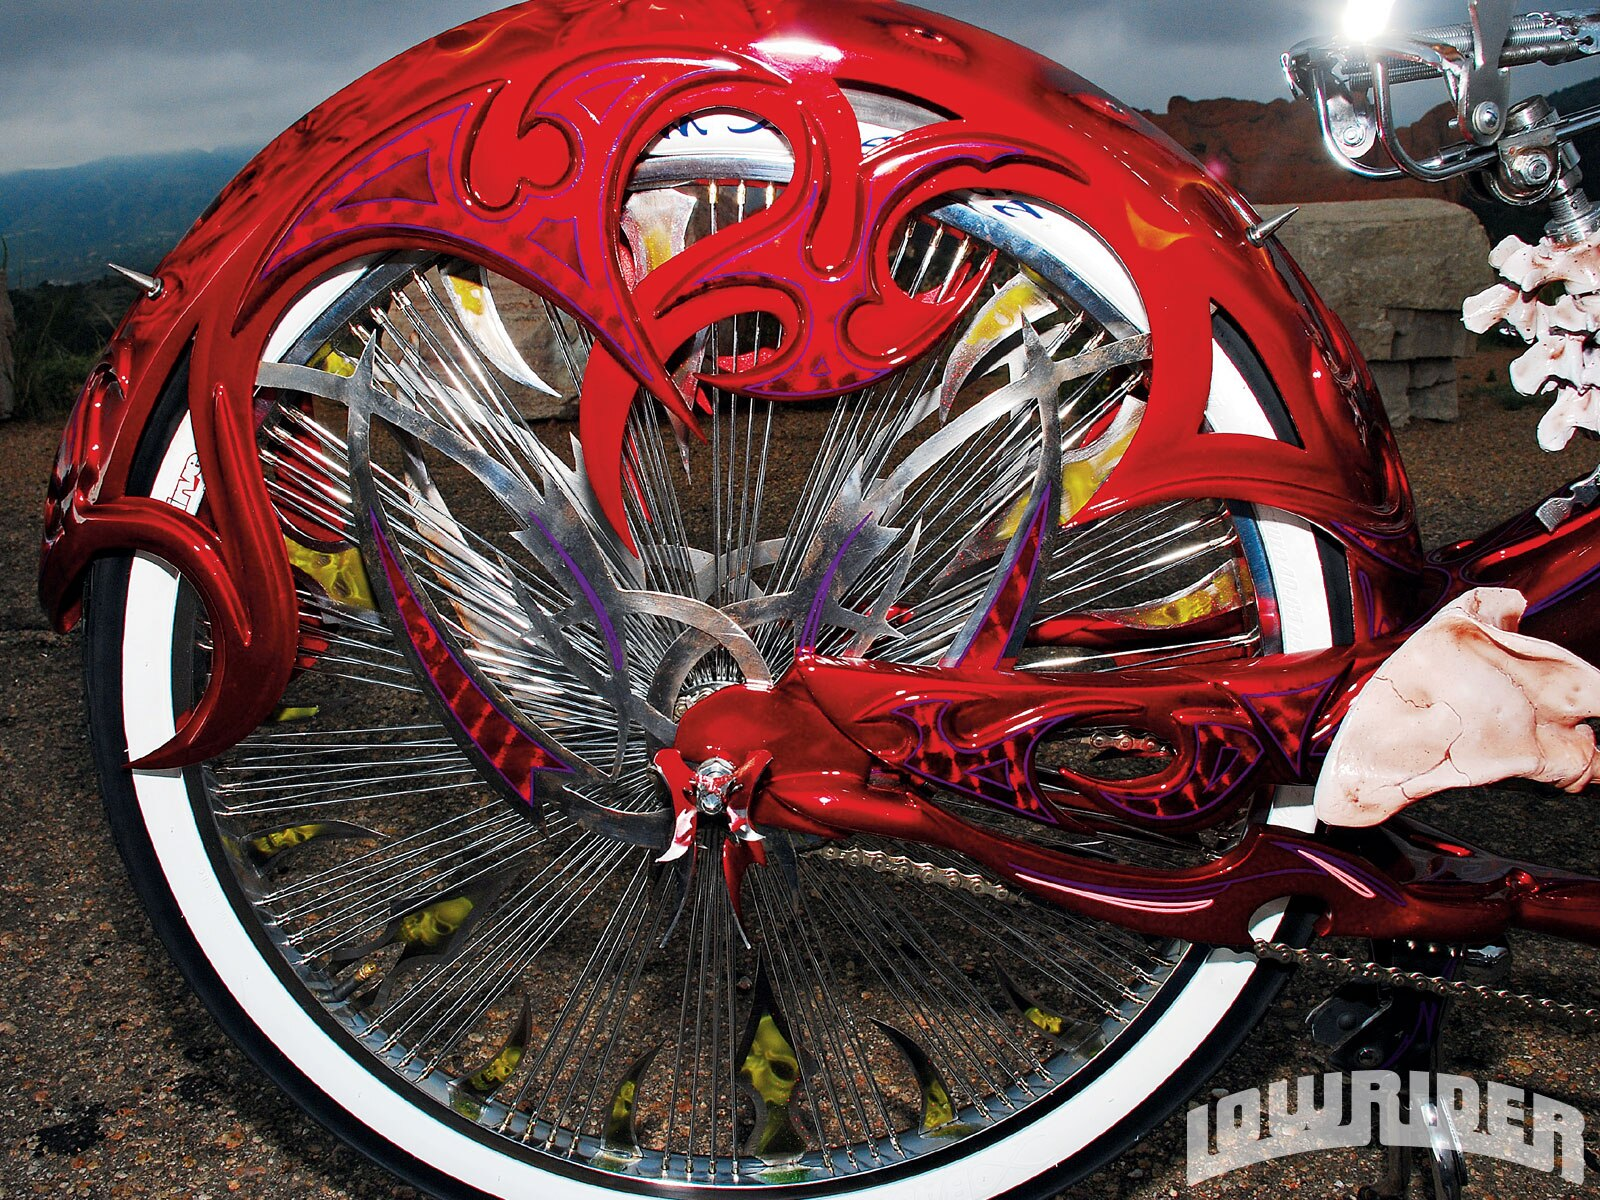 2008 Stretch Beach Cruiser - Lowrider Magazine